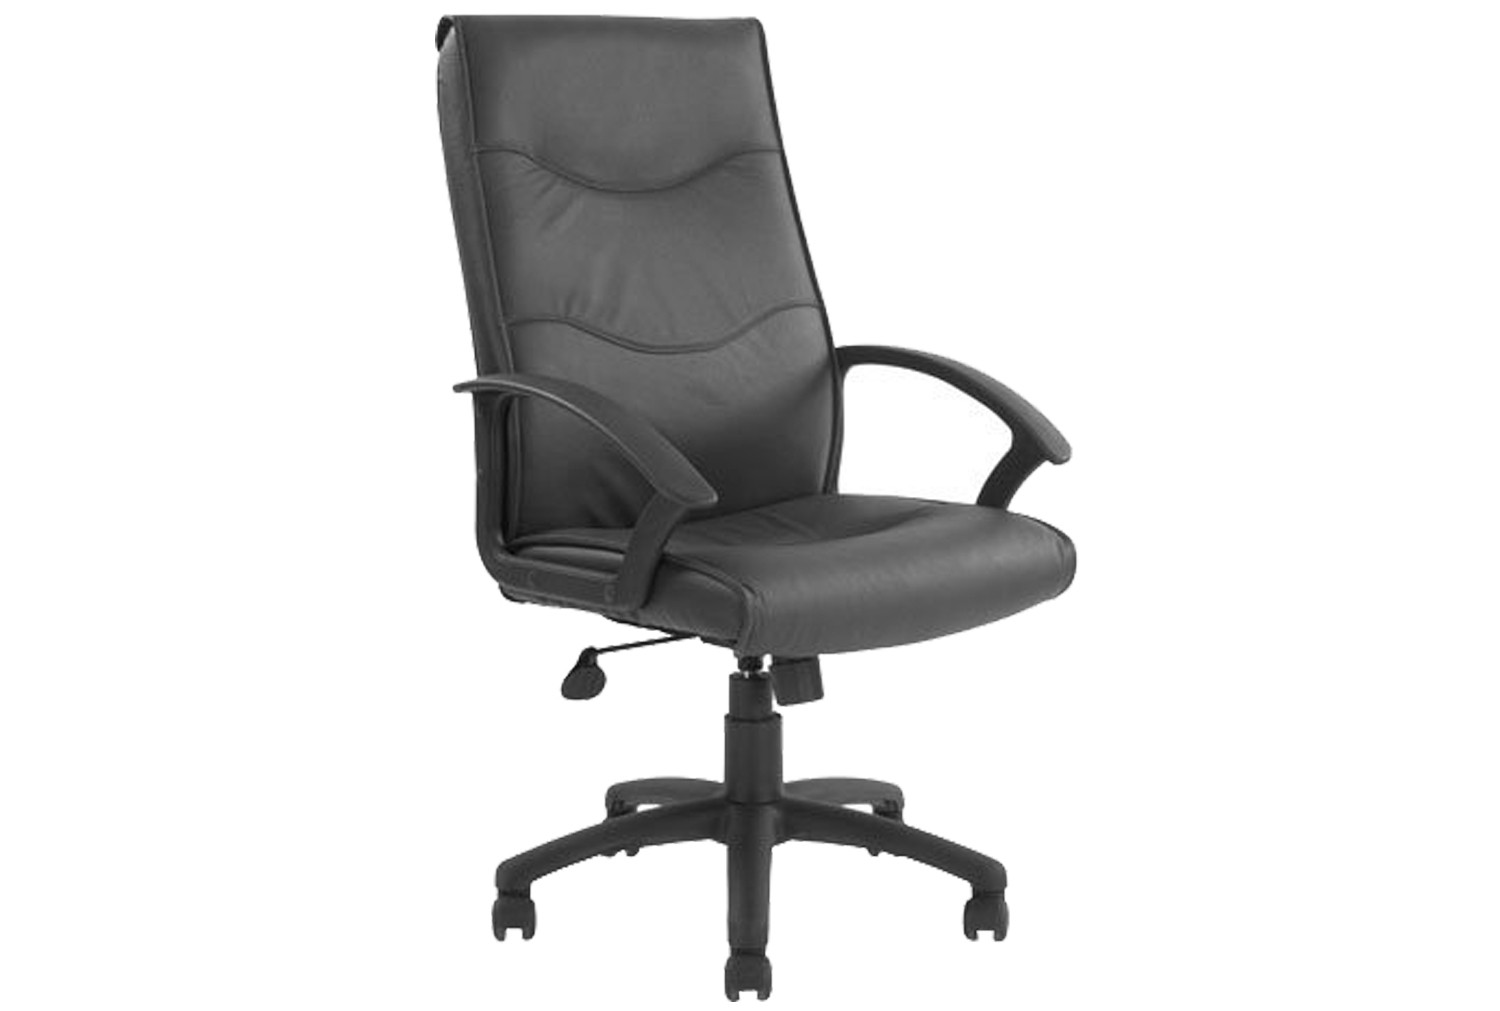 Next-Day Corbett High Back Leather Faced Chair